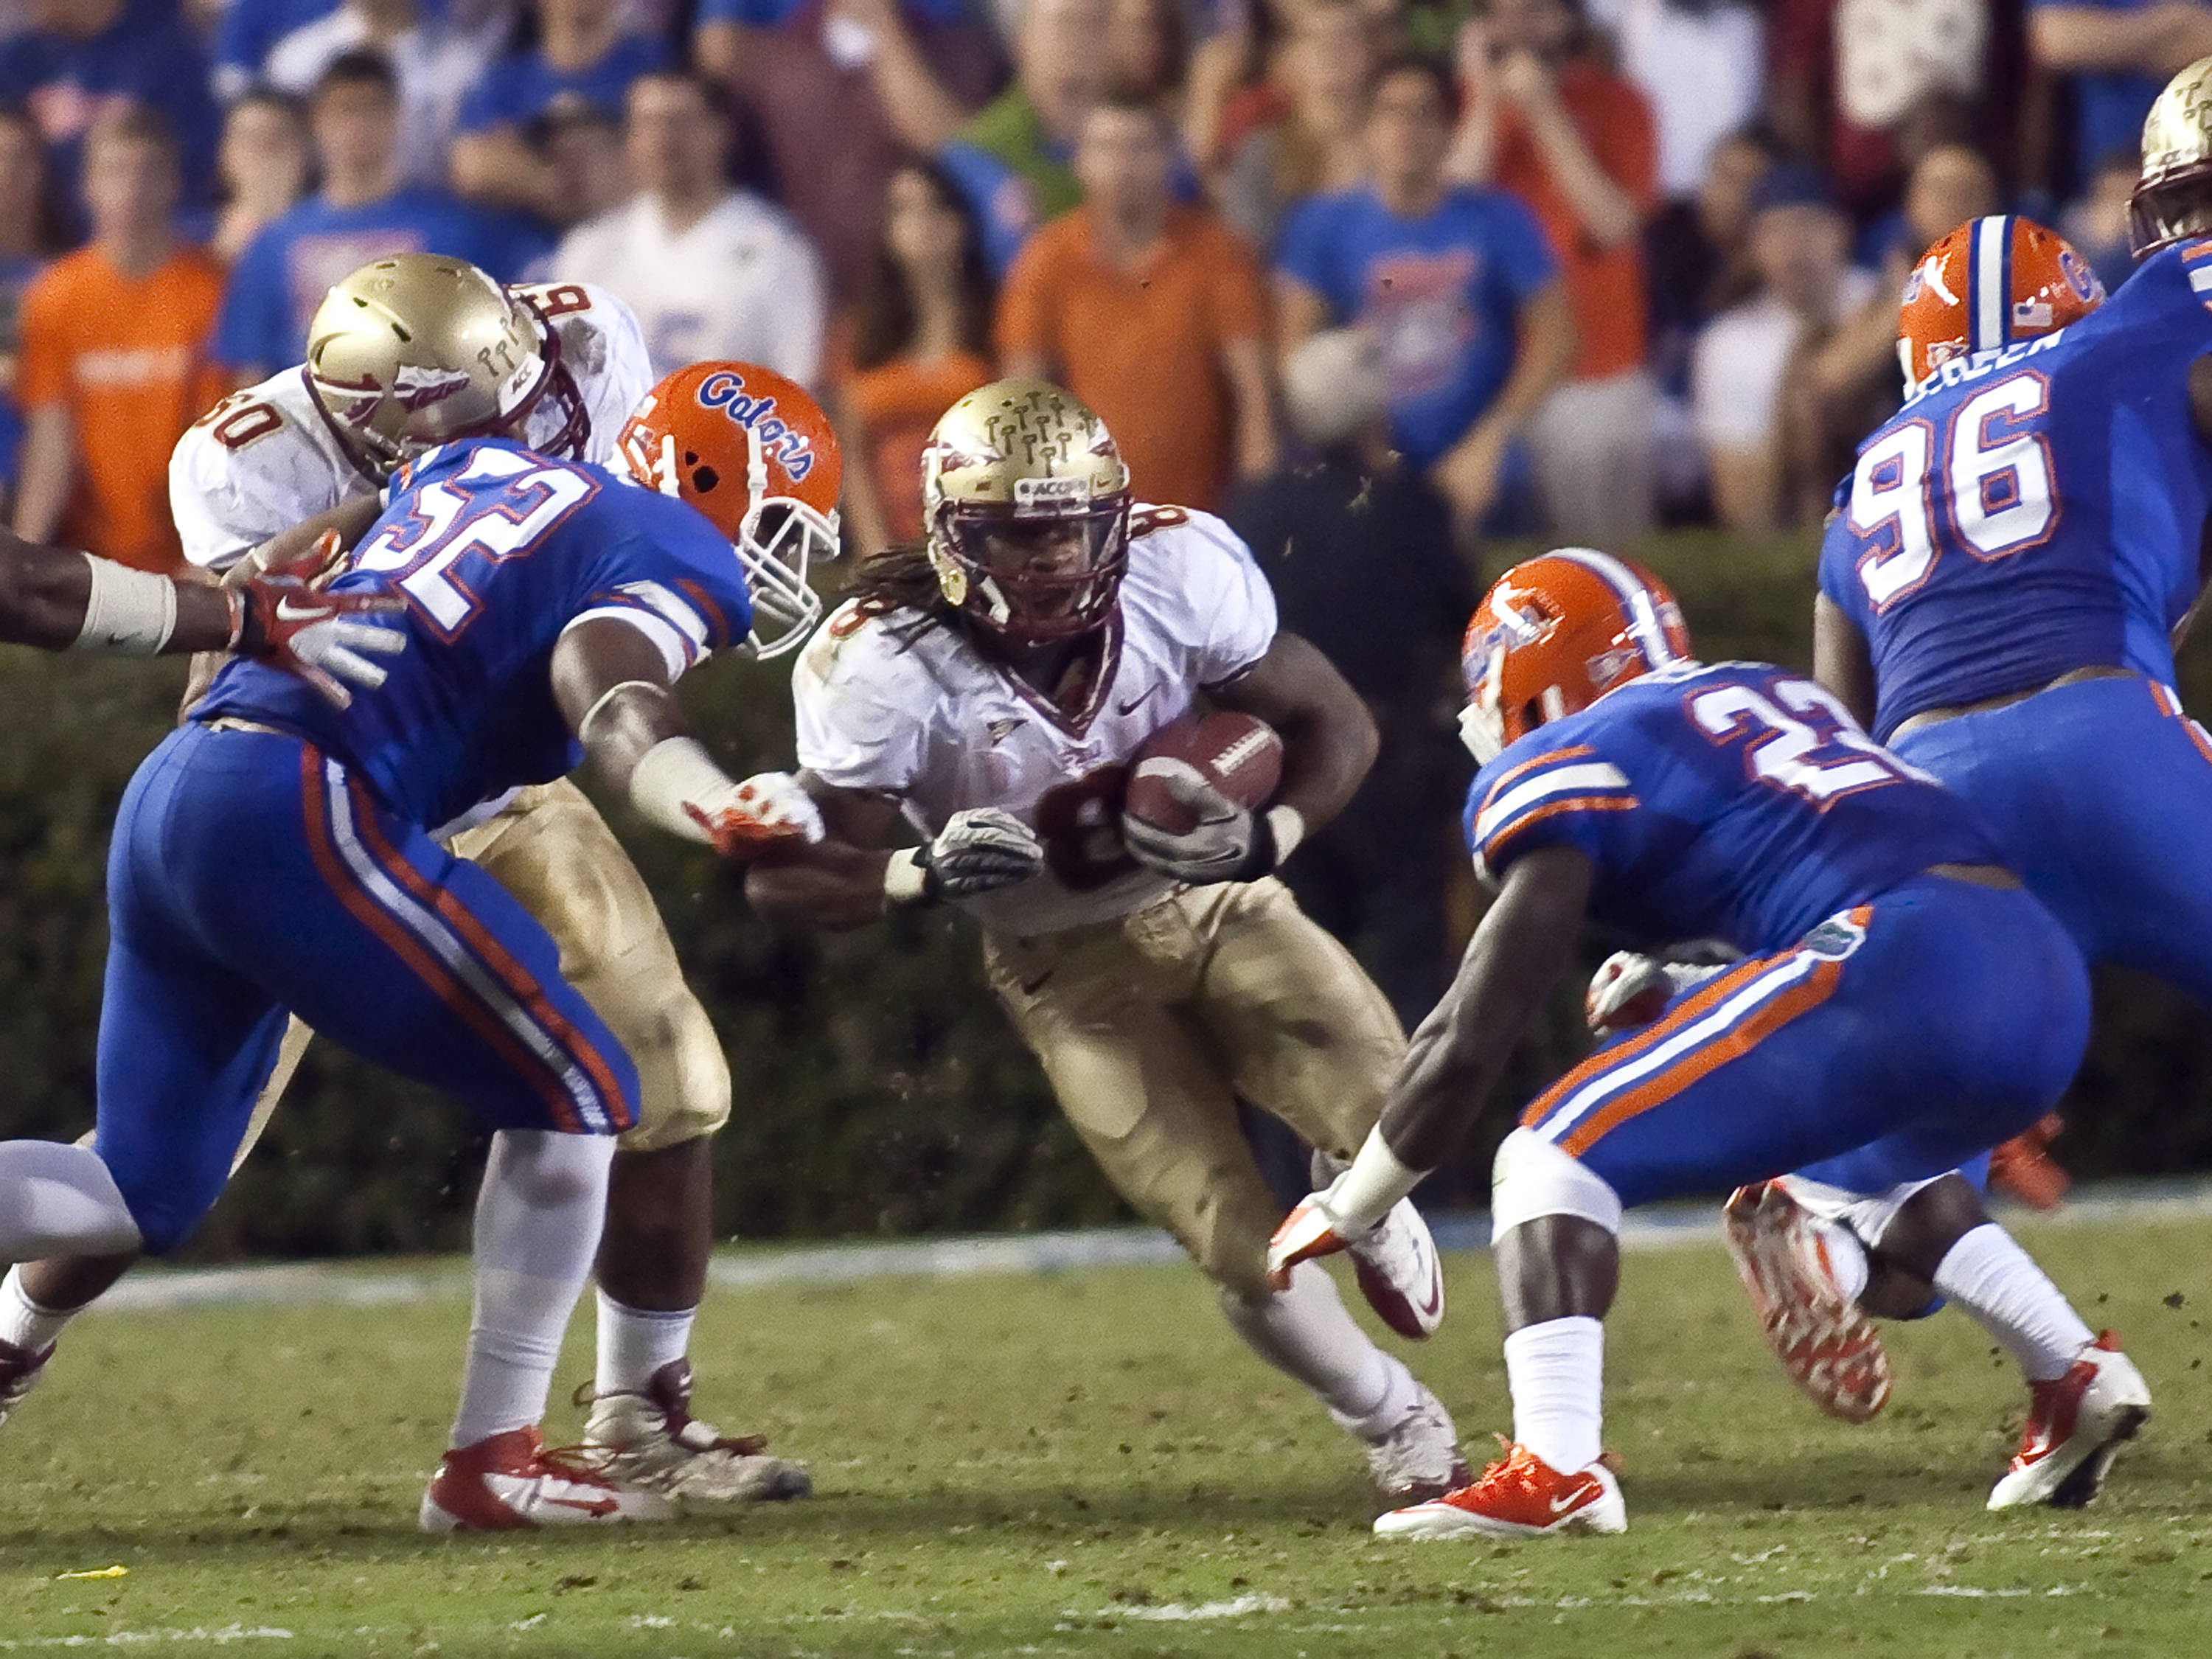 Devonta Freeman (8) running through  a large hole, FSU vs Florida, 11/26/2011